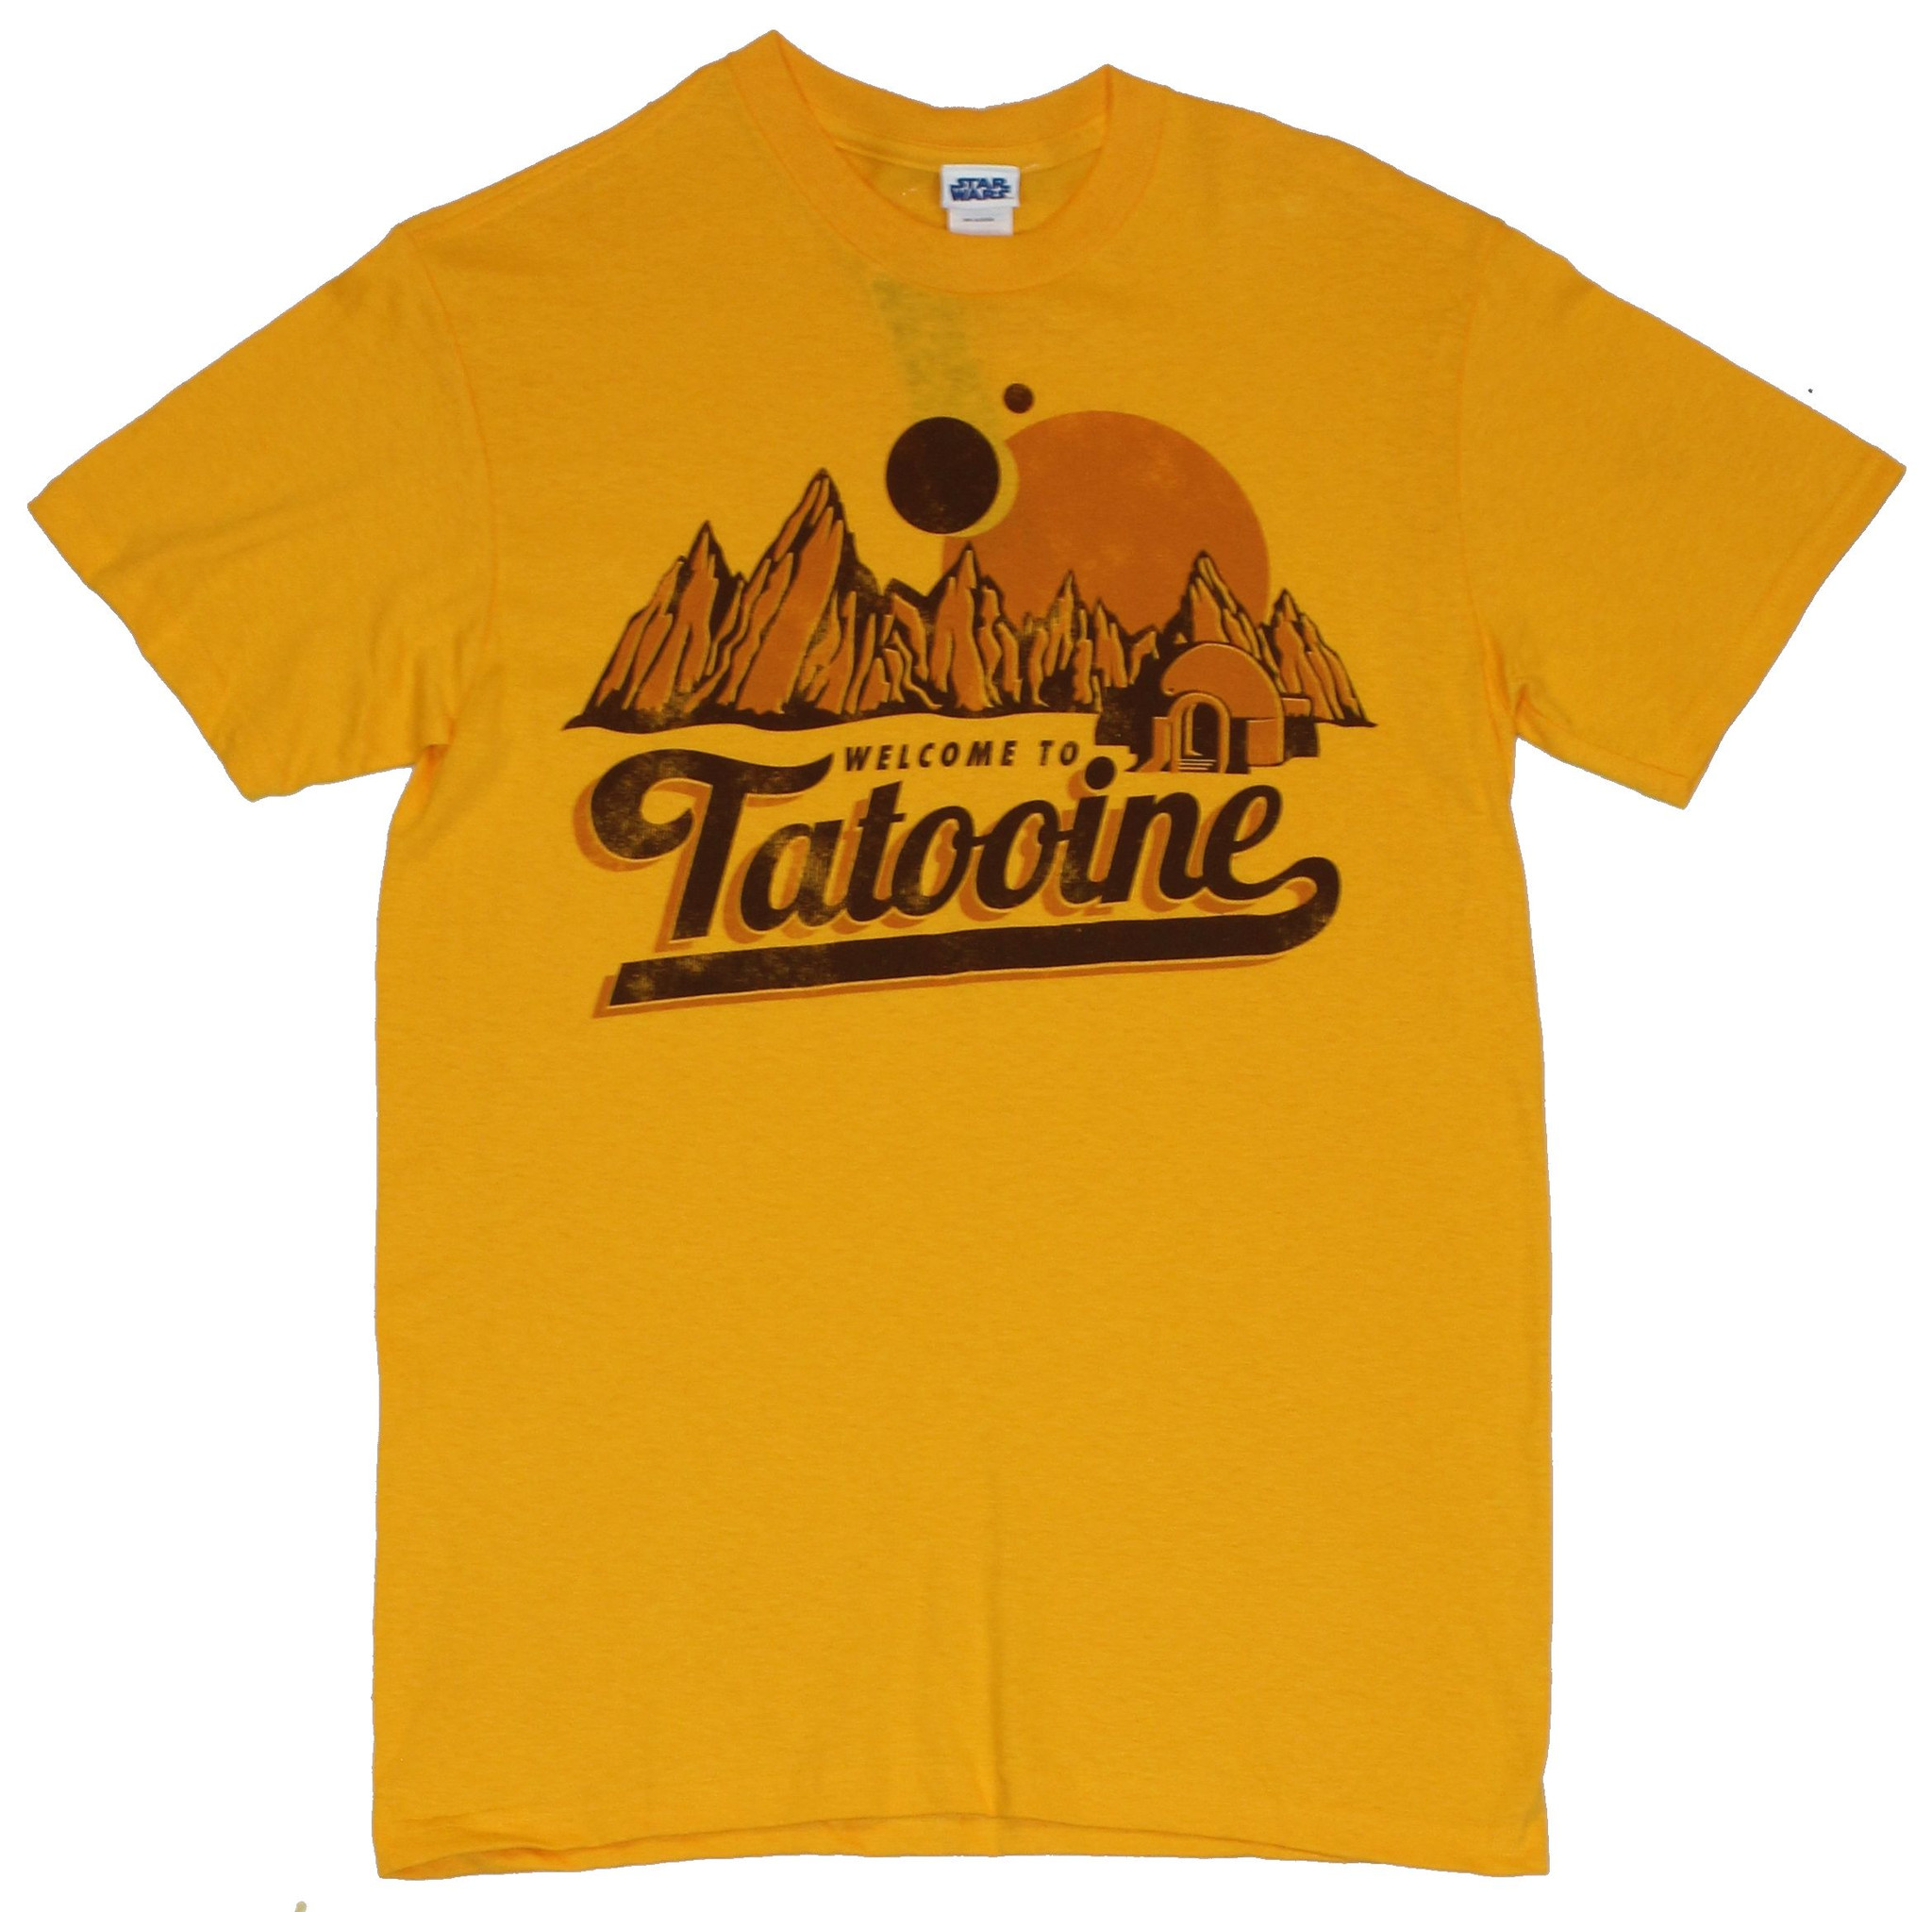 Star Wars Mens T-Shirt  - Welcome to Tatooine Distressed Image